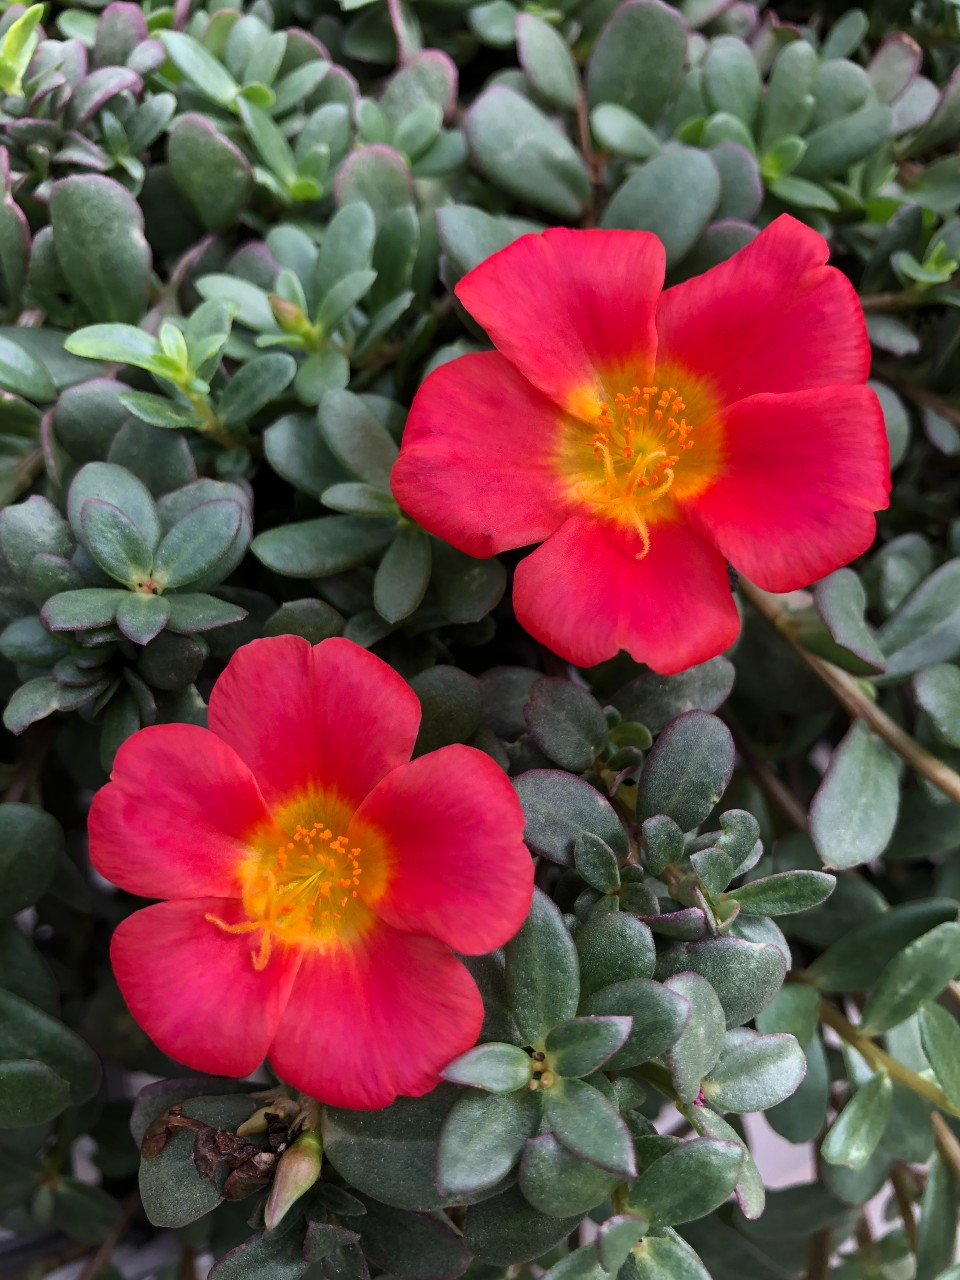 image of a red moss rose flower